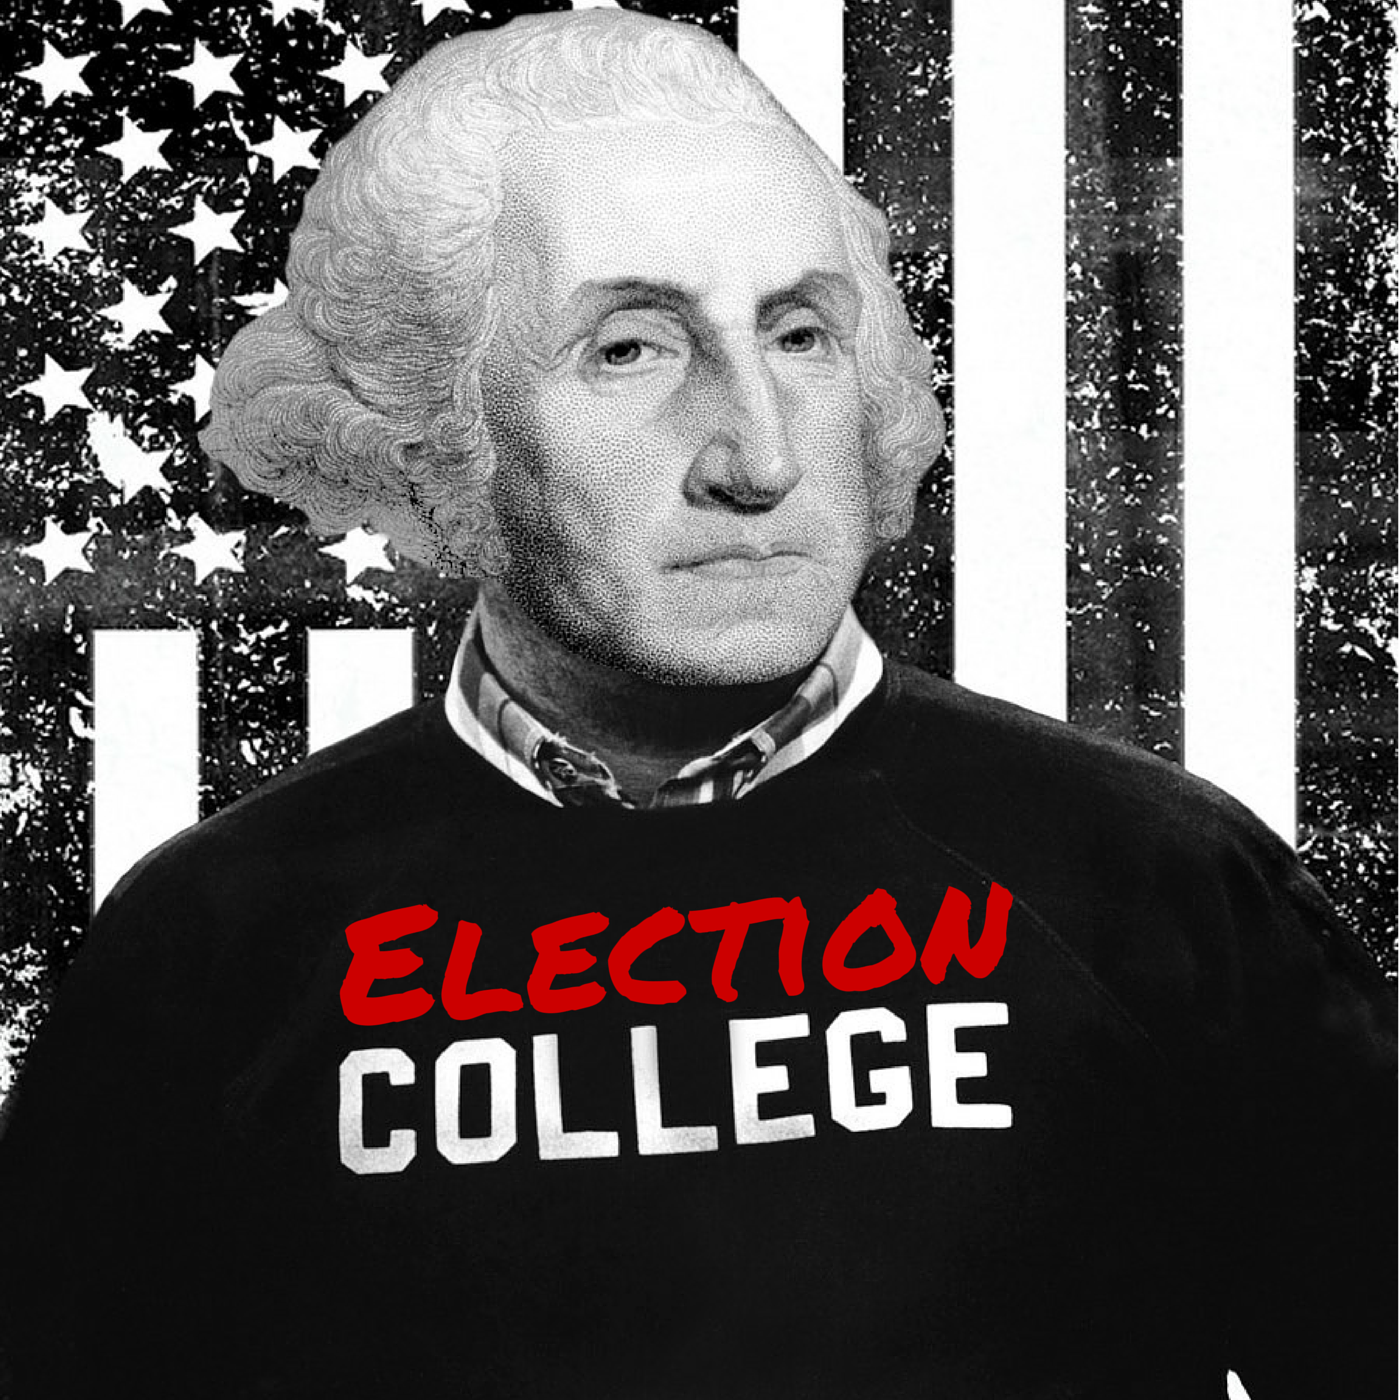 Harding Dies and Coolidge Becomes President | Episode #047 | Election College: United States Presidential Election History